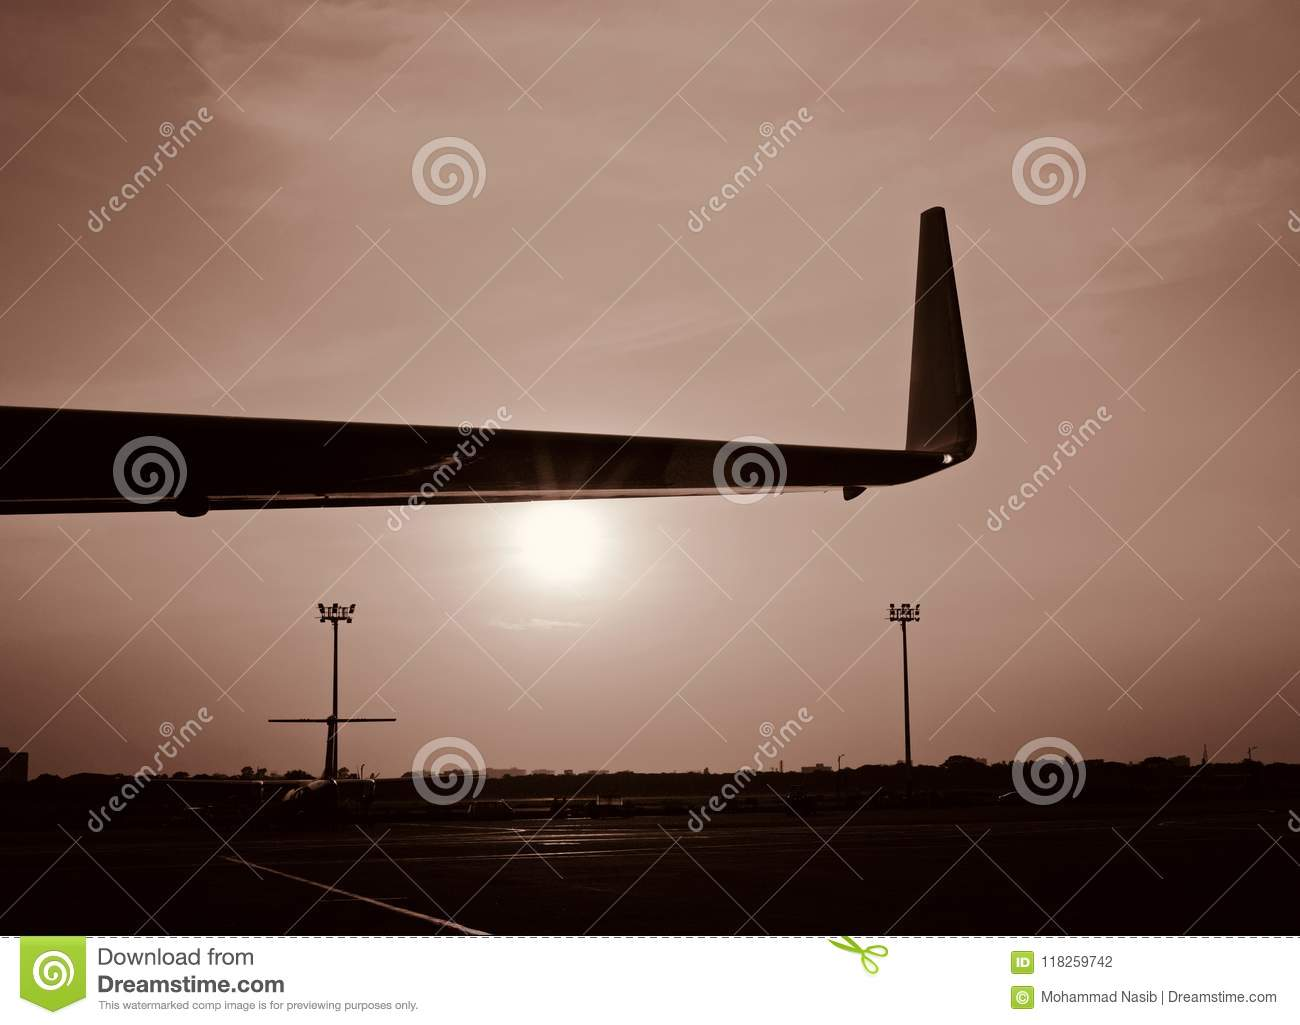 Download A Beautiful Part Of An Aircraft Wings In The Afternoon Photo Stock Photo - Image of photo, part: 118259742